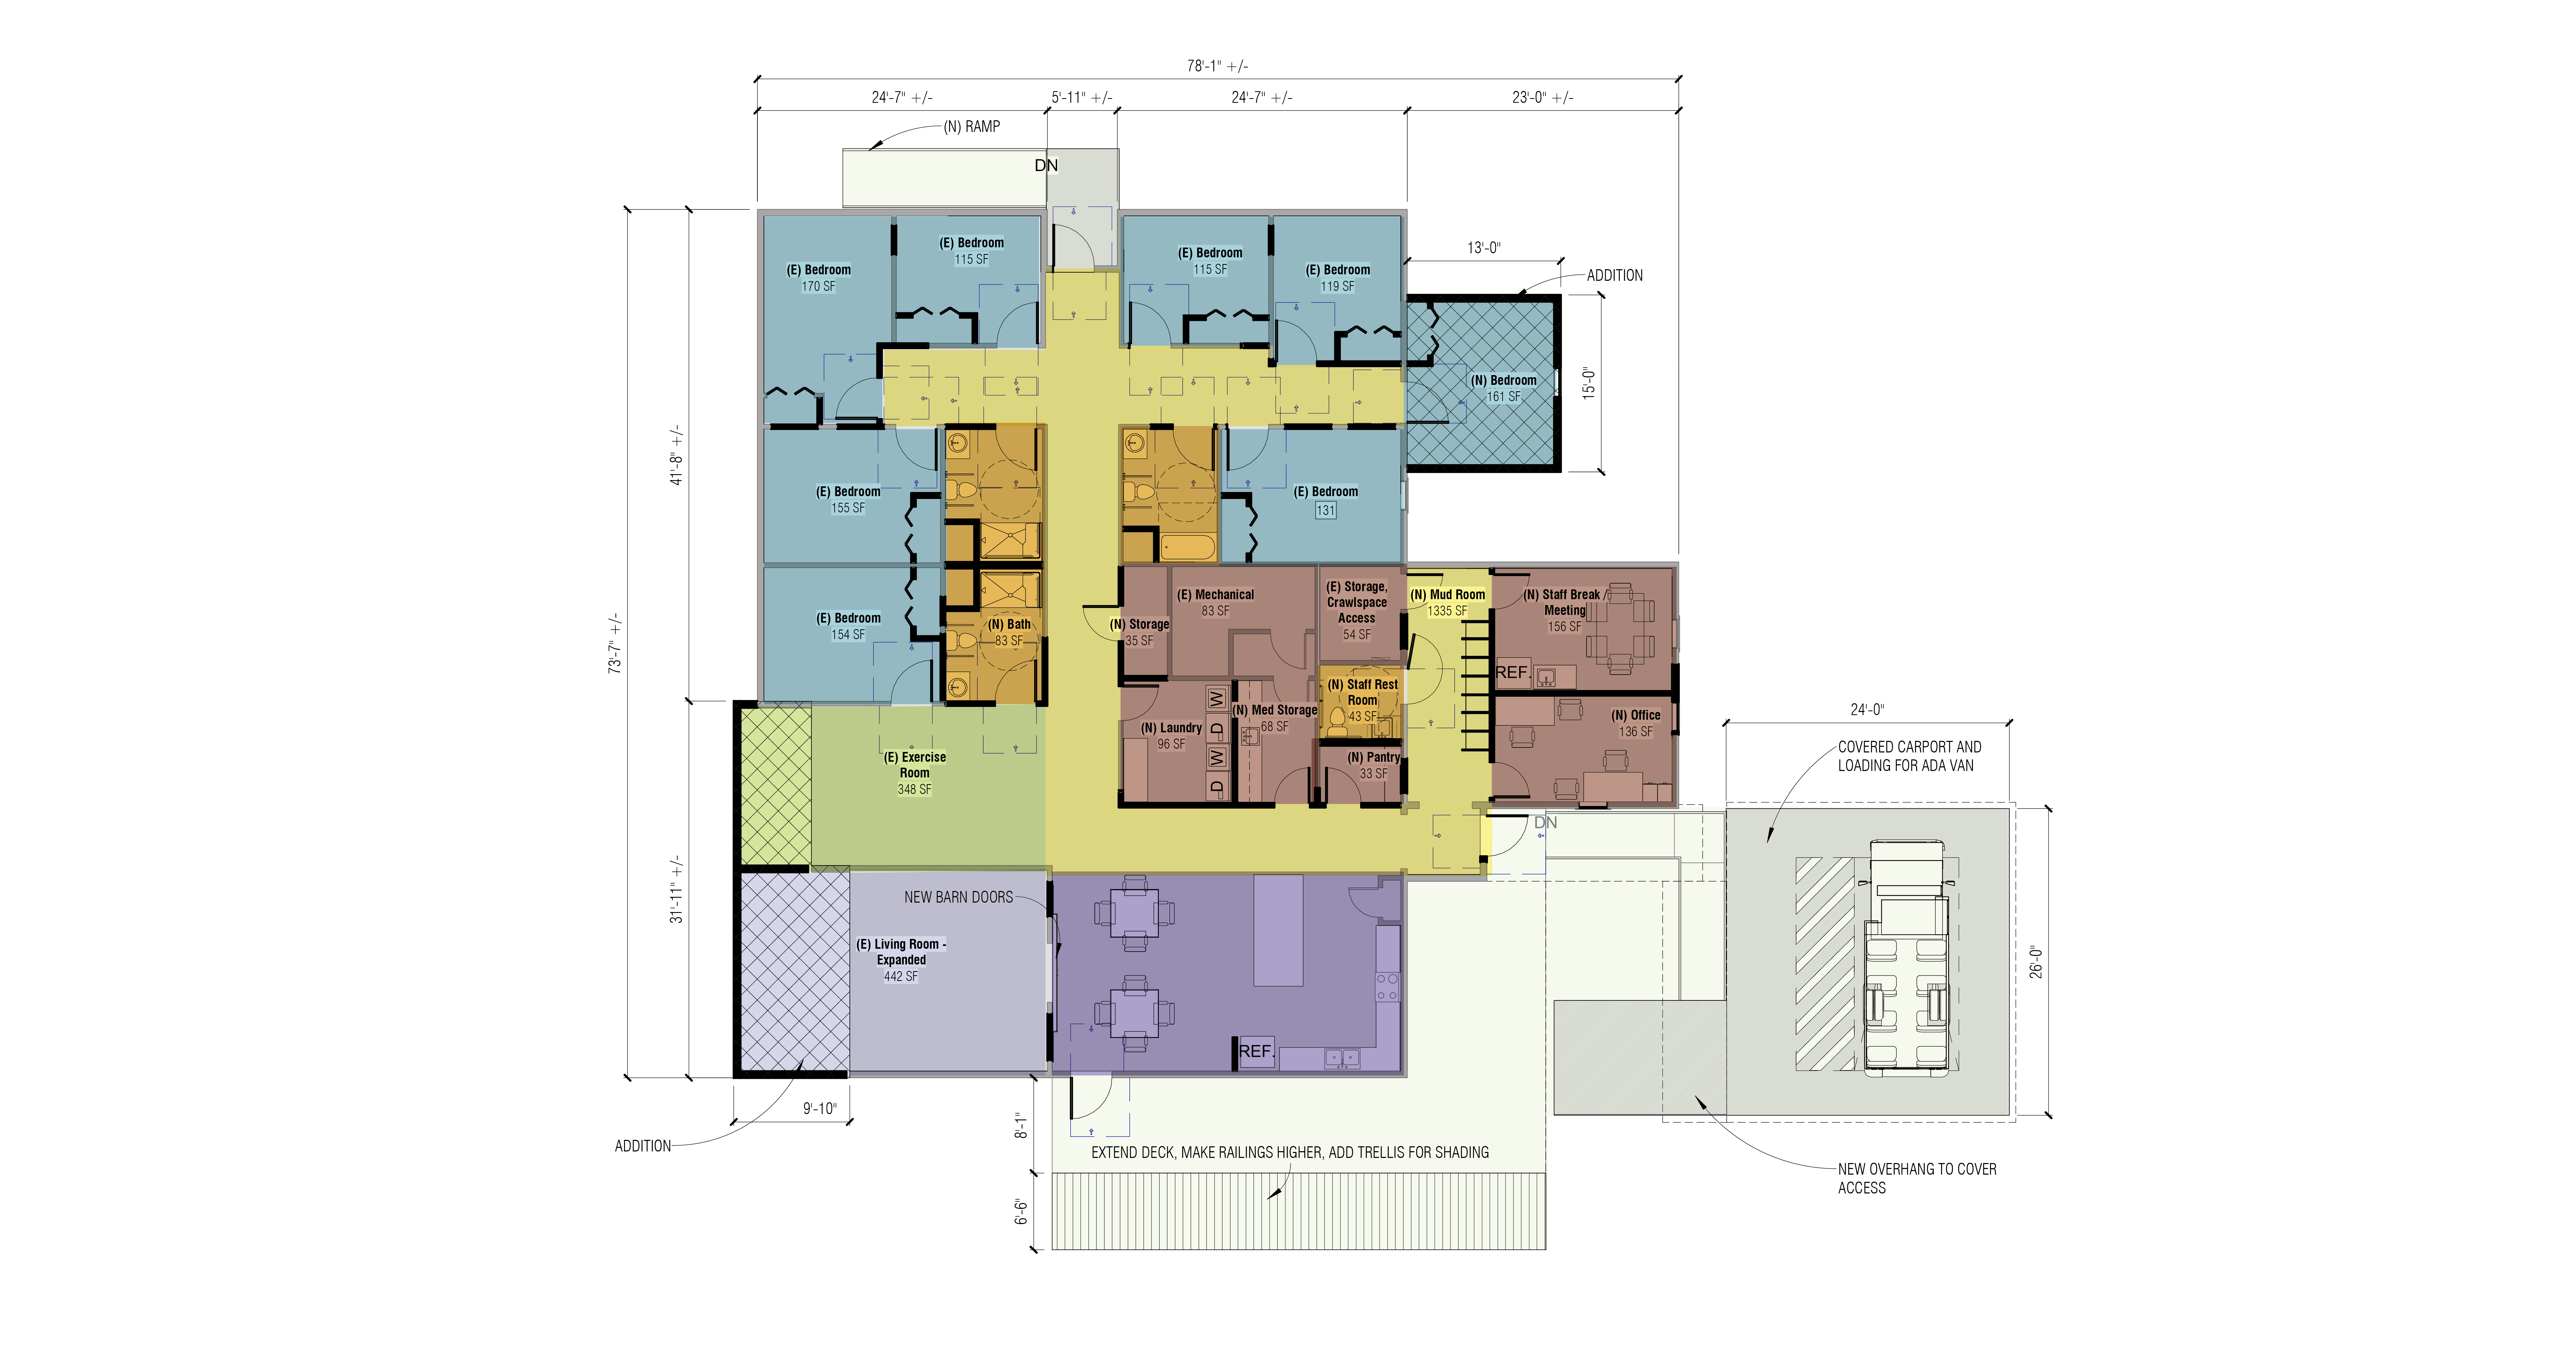 Renovation Drawing Colored2